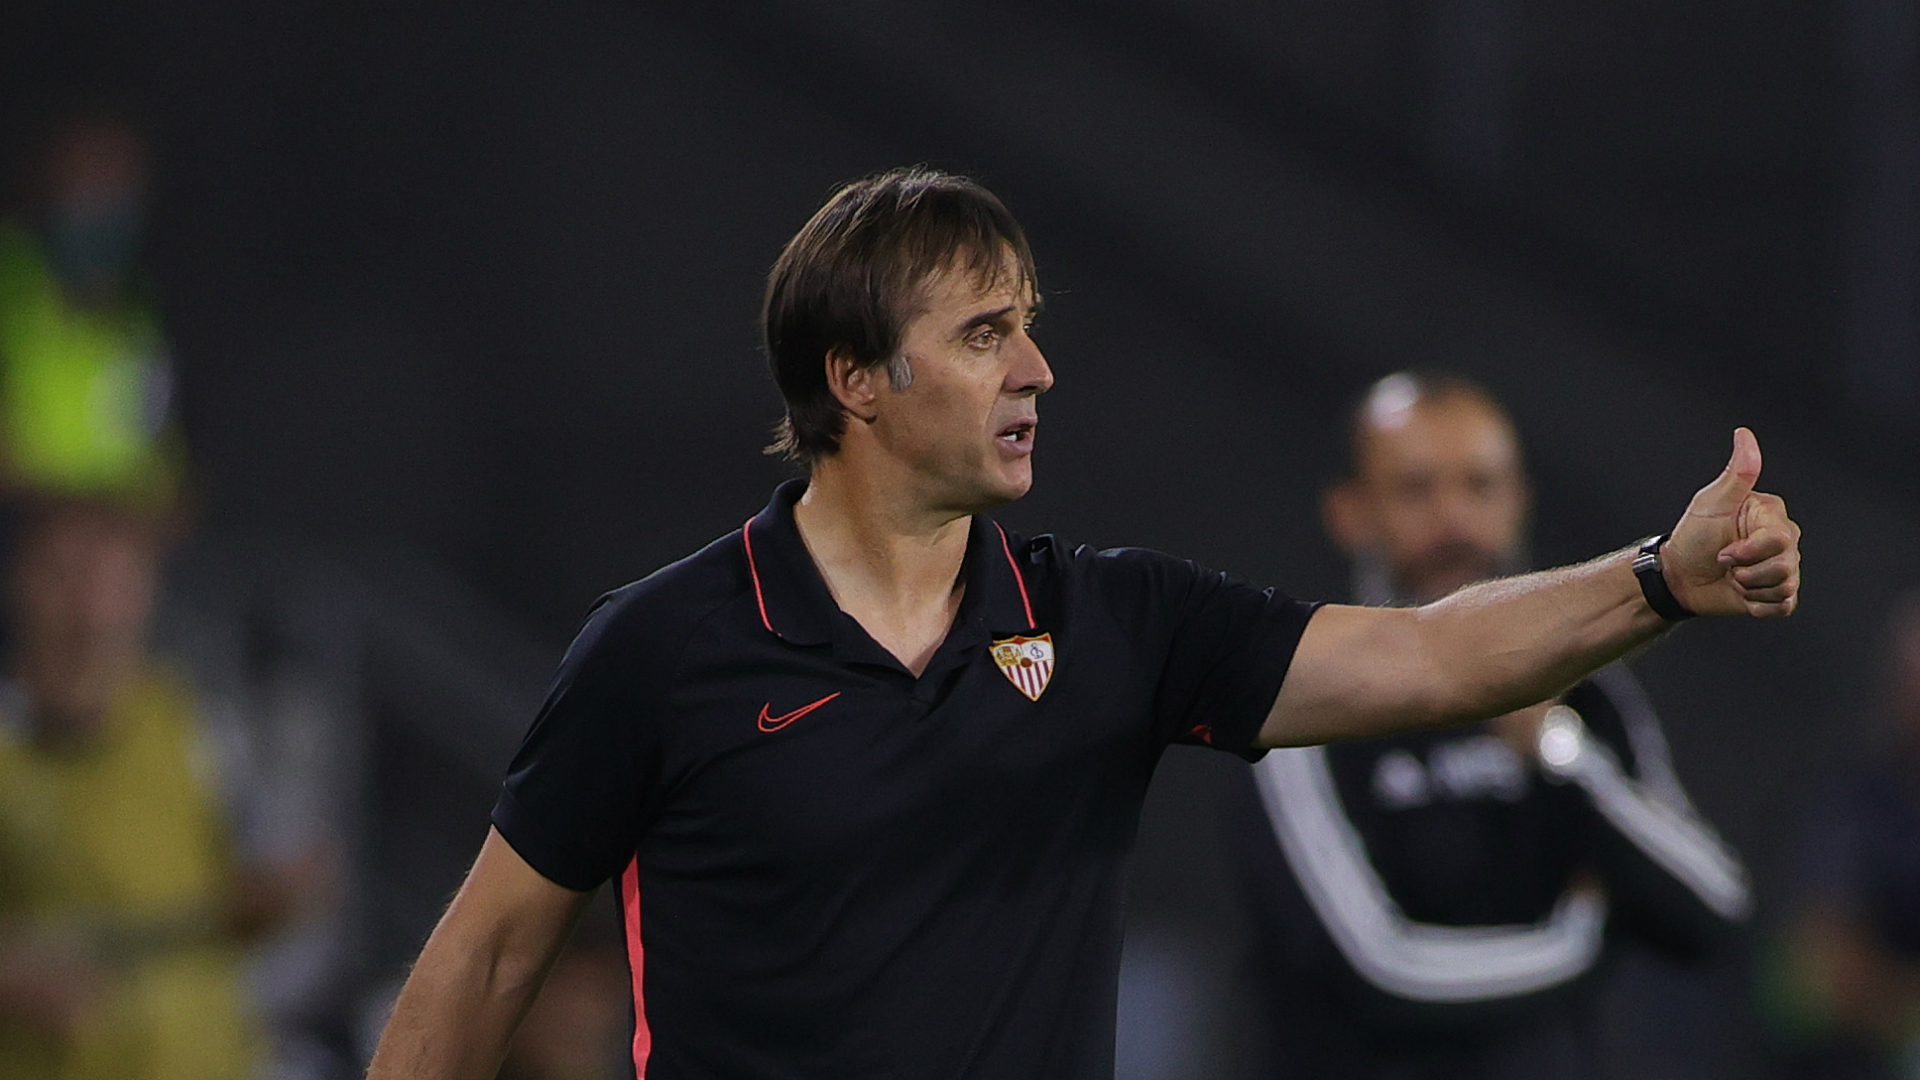 Man Utd the 'biggest team in world' but Sevilla hopeful of progressing - Lopetegui